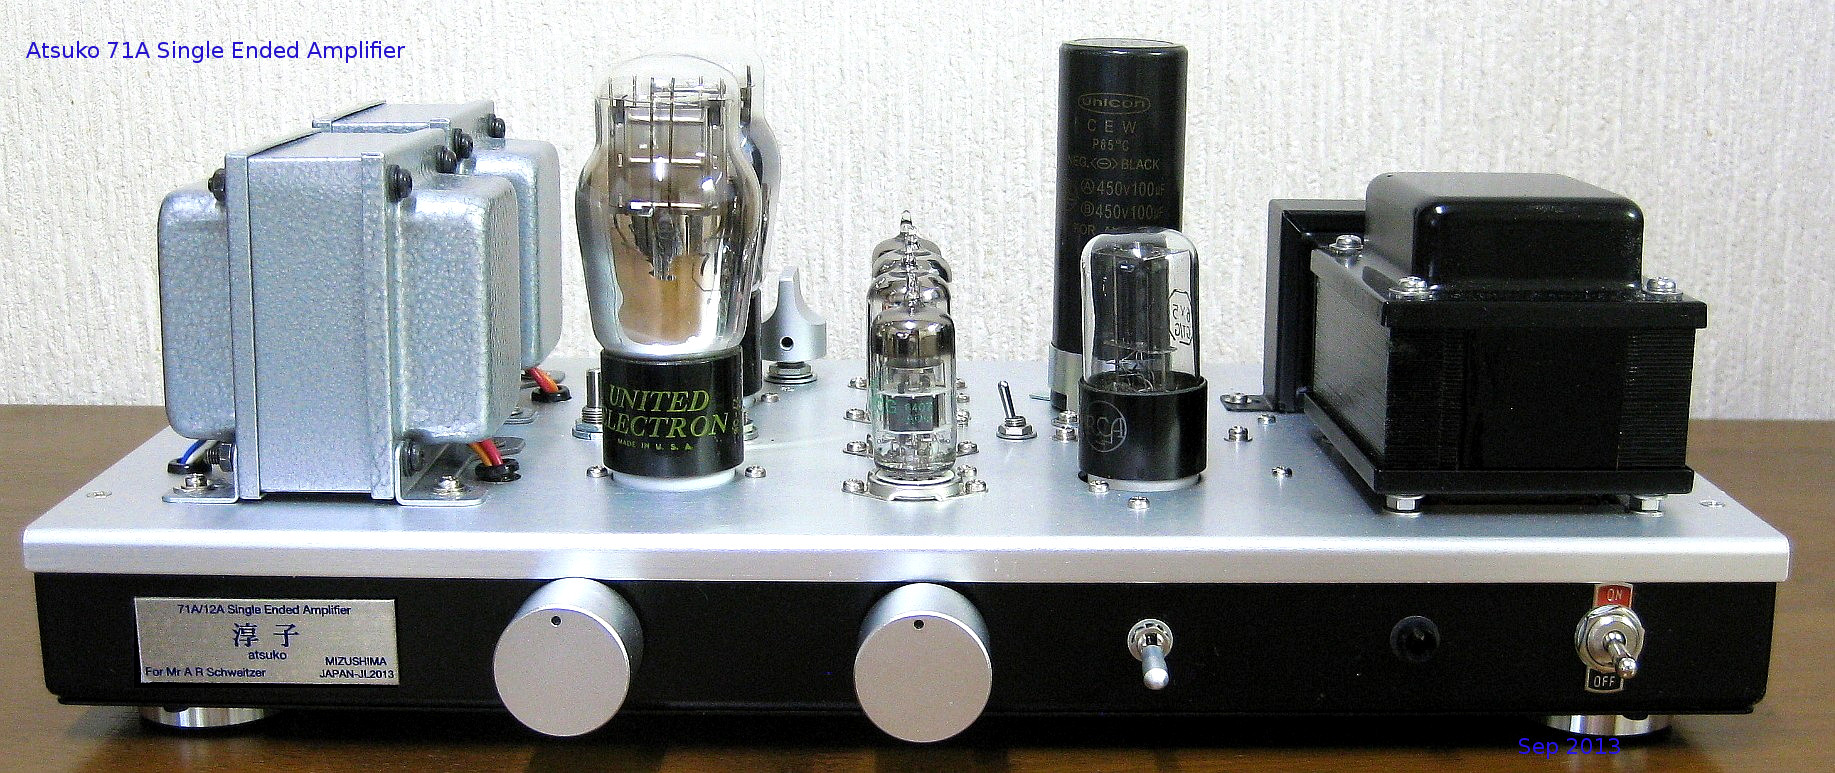 71A Single Ended Amplifier